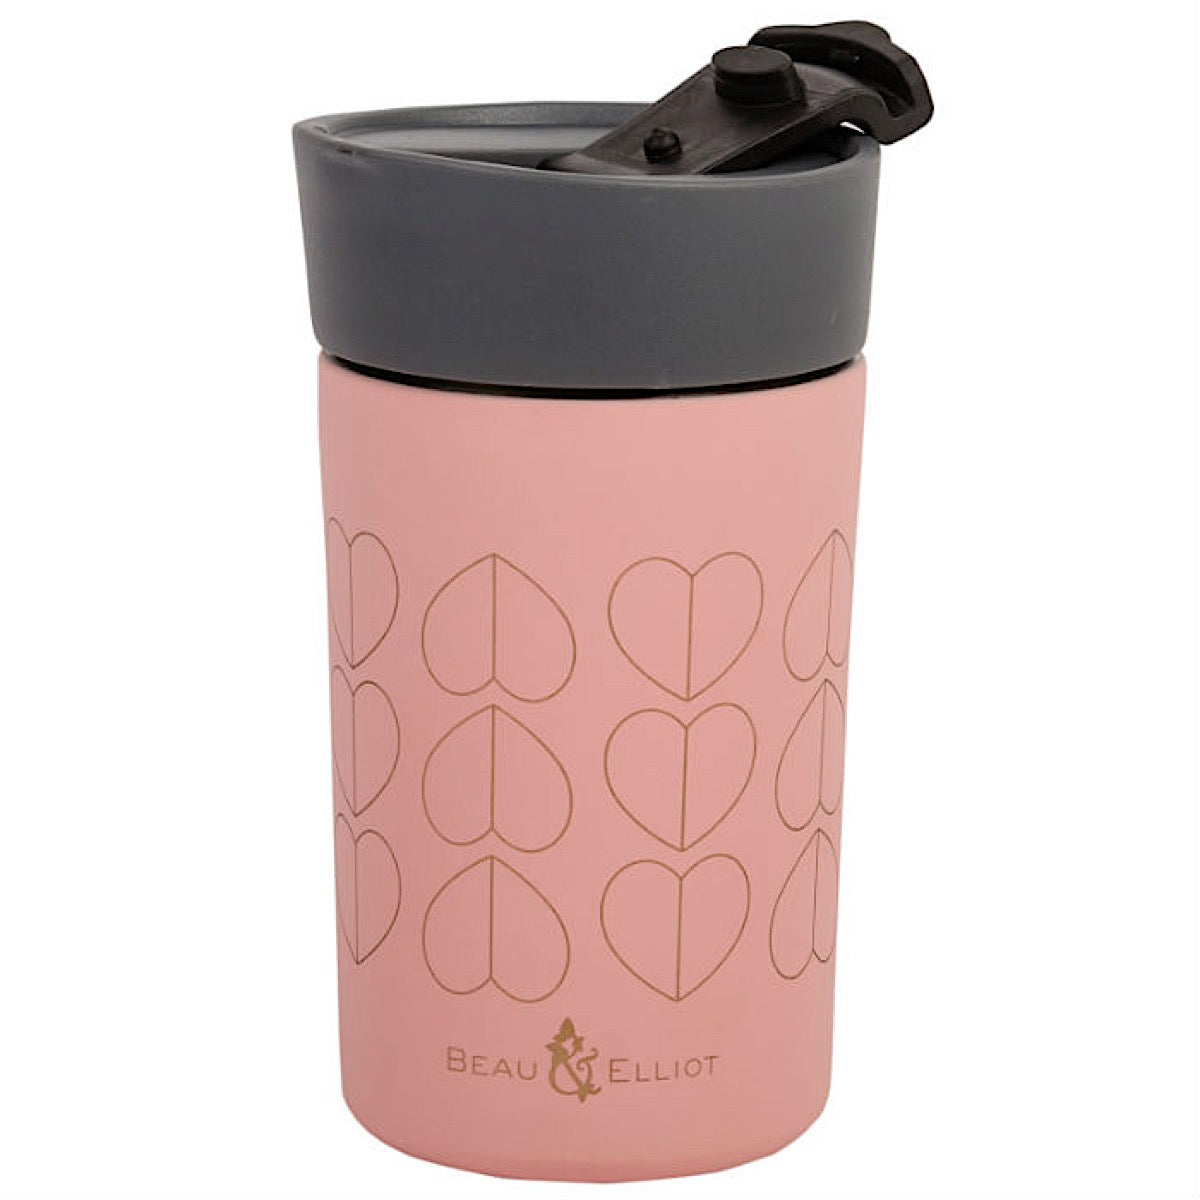 Beau & Elliot Blush Insulated Travel Mug